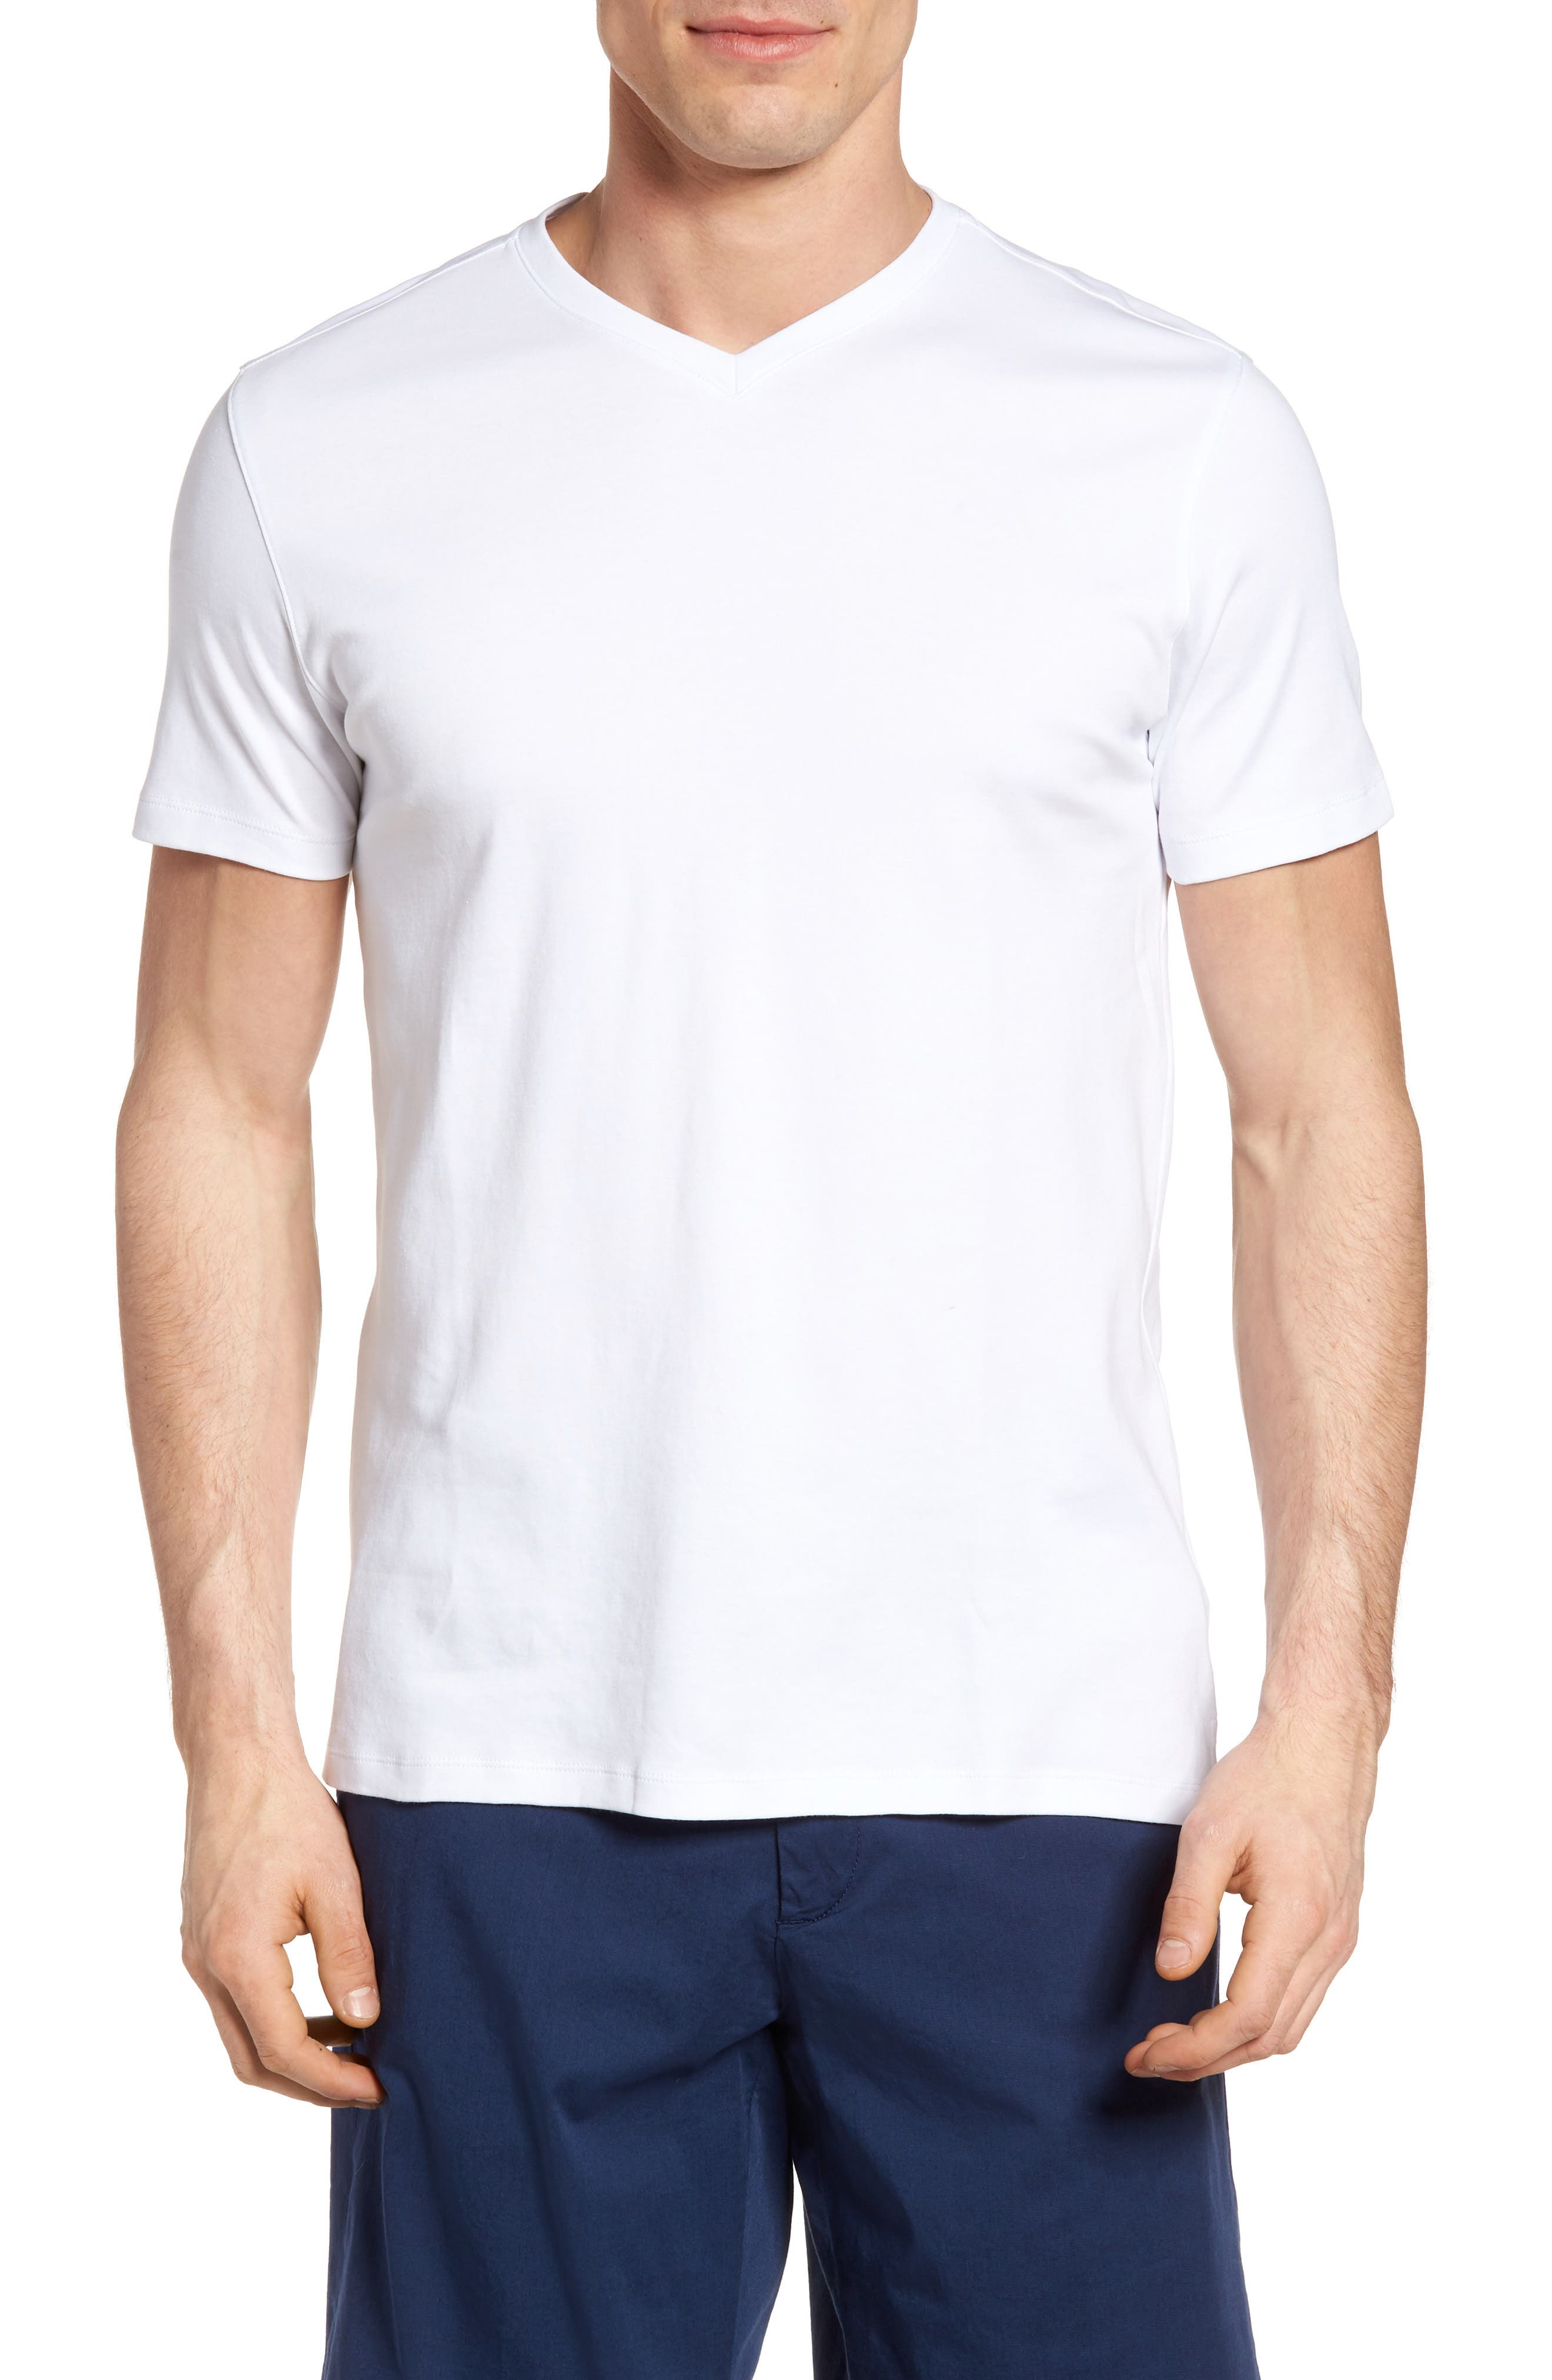 Robert Barakett Georgia Regular Fit V-Neck T-Shirt